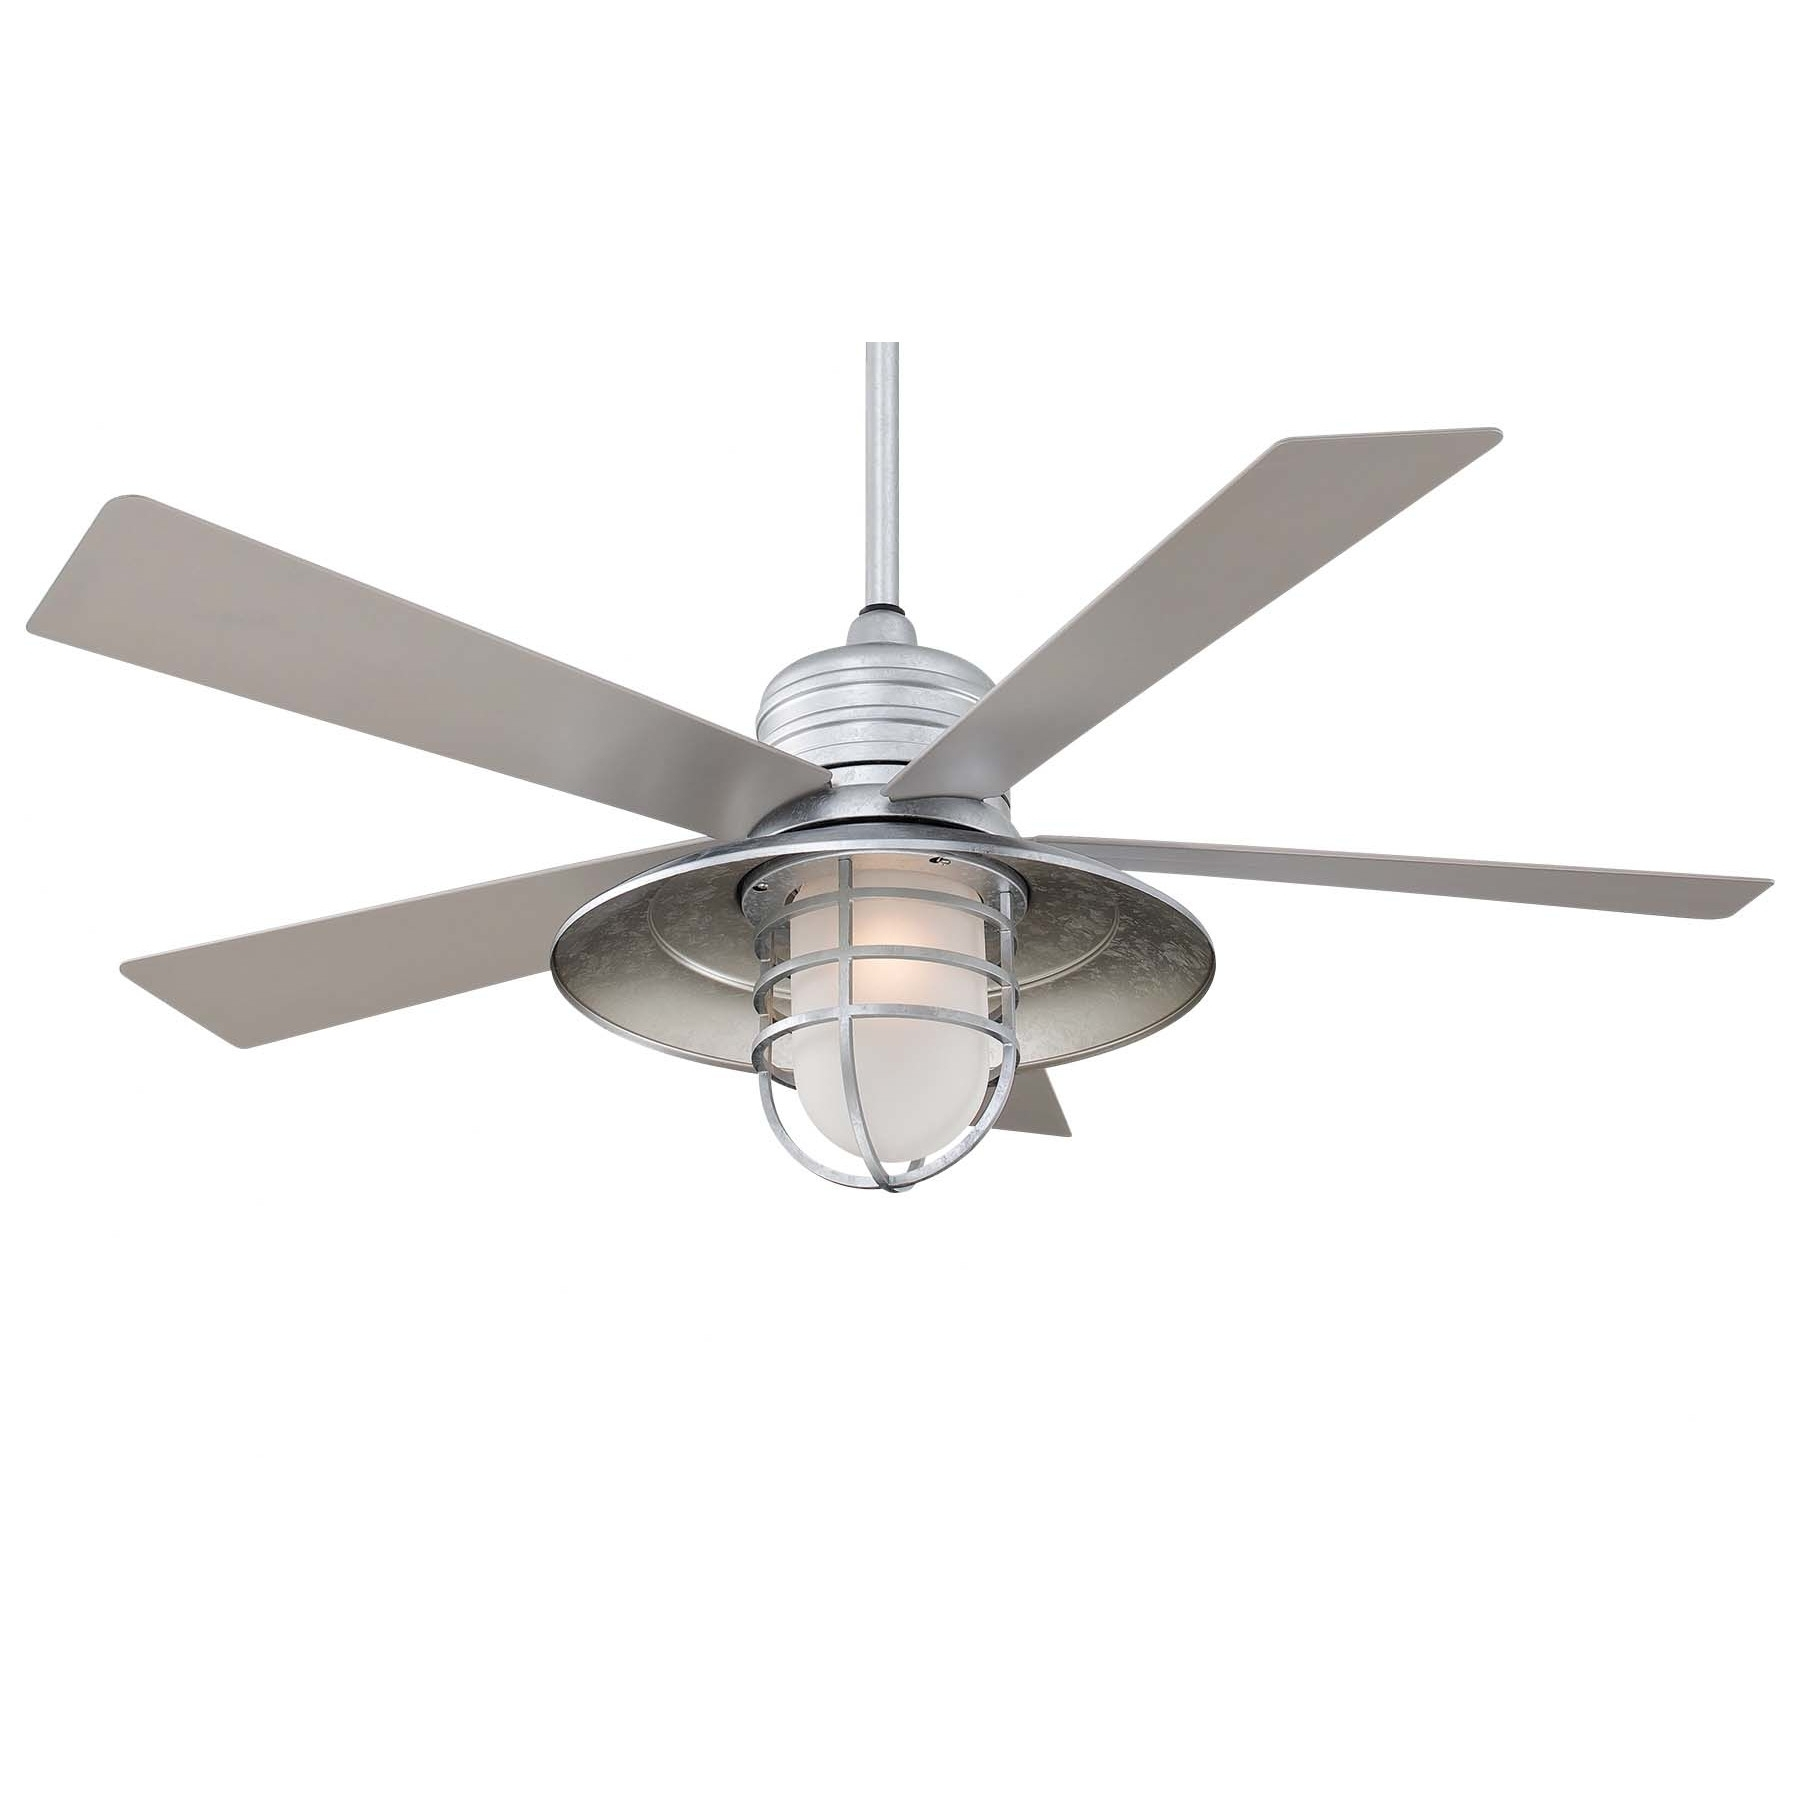 Well Known 42 Wayfair Ceiling Fans, Minka Aire 54Quot; Rainman 5 Blade Indoor Intended For Wayfair Outdoor Ceiling Fans With Lights (View 3 of 20)